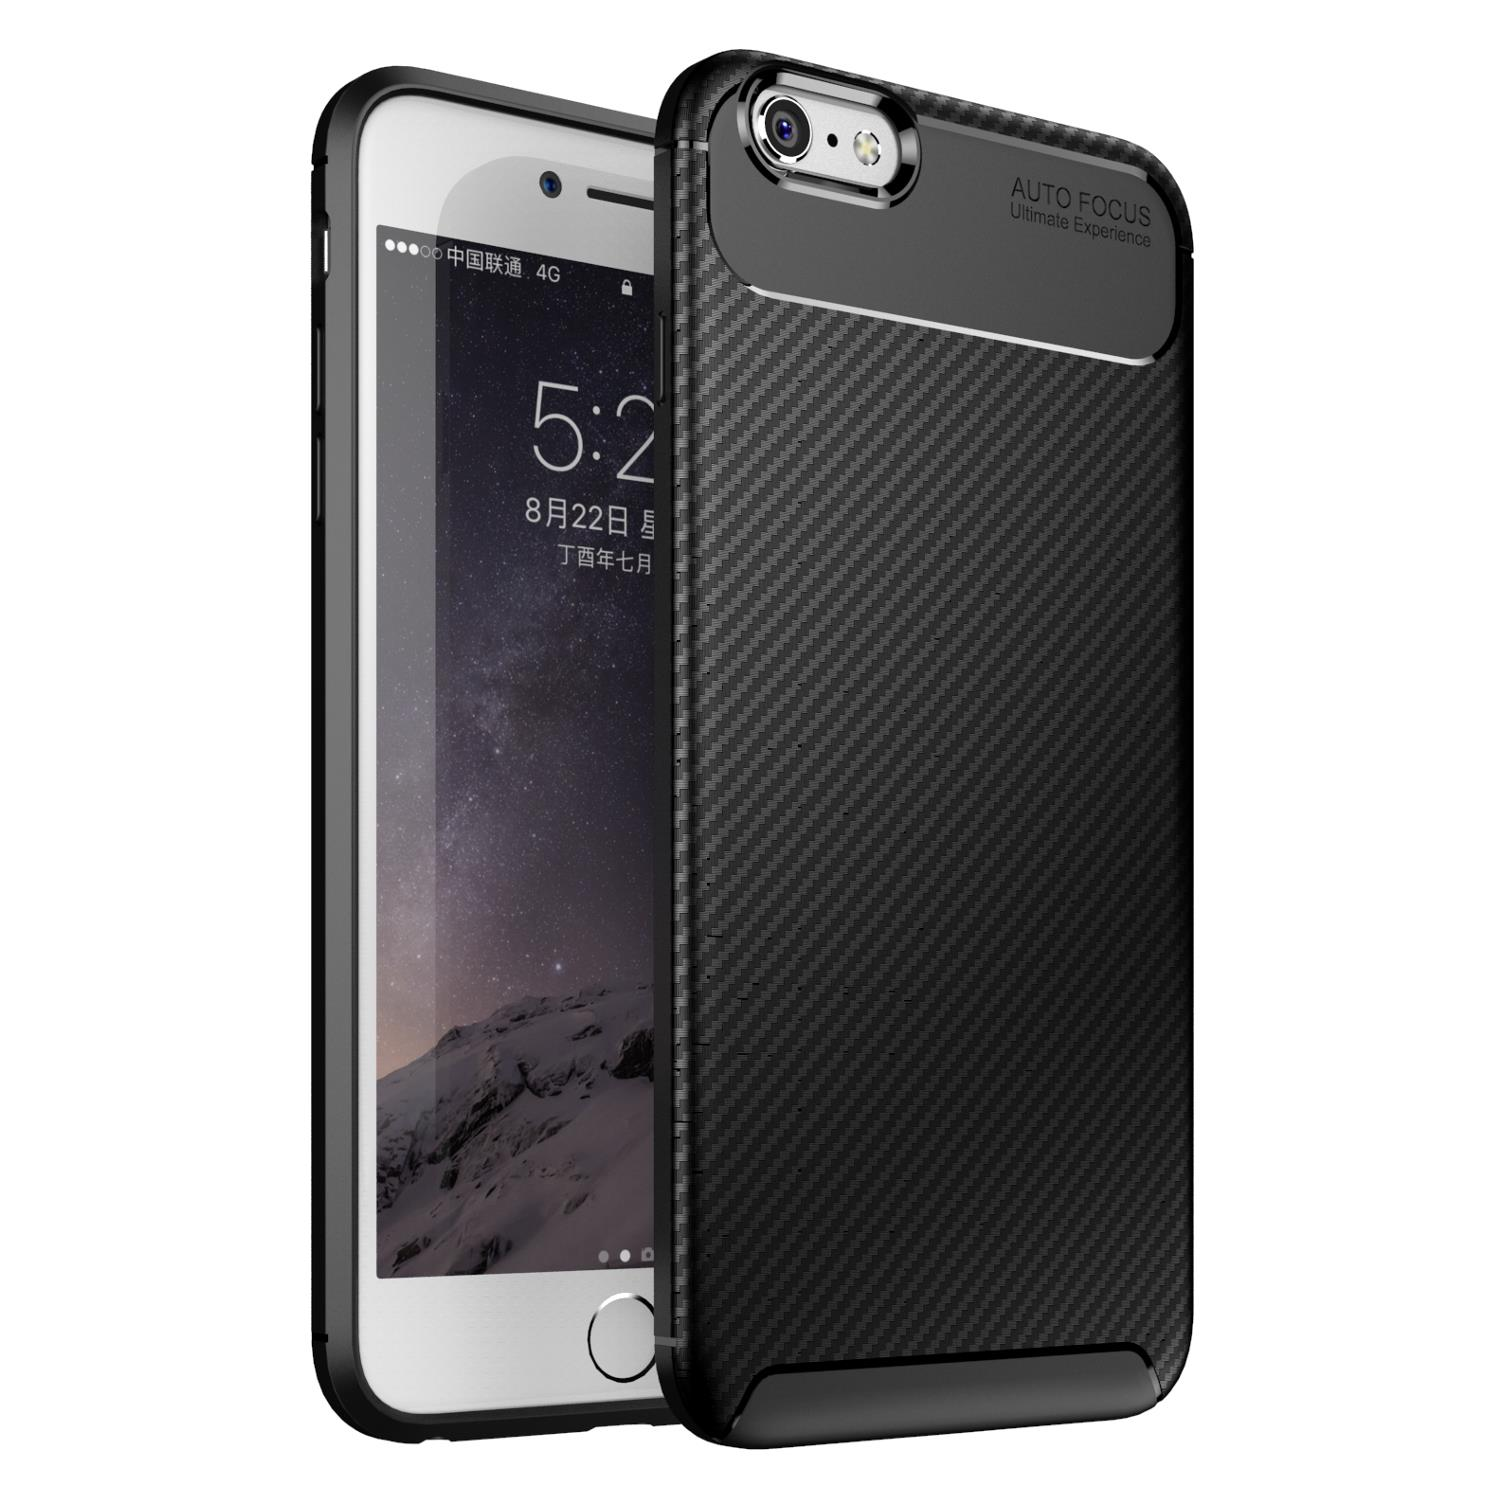 Bakeey Protective Case For iPhone 6/6s Slim Carbon Fiber Fingerprint  Resistant Soft TPU Back Cover.